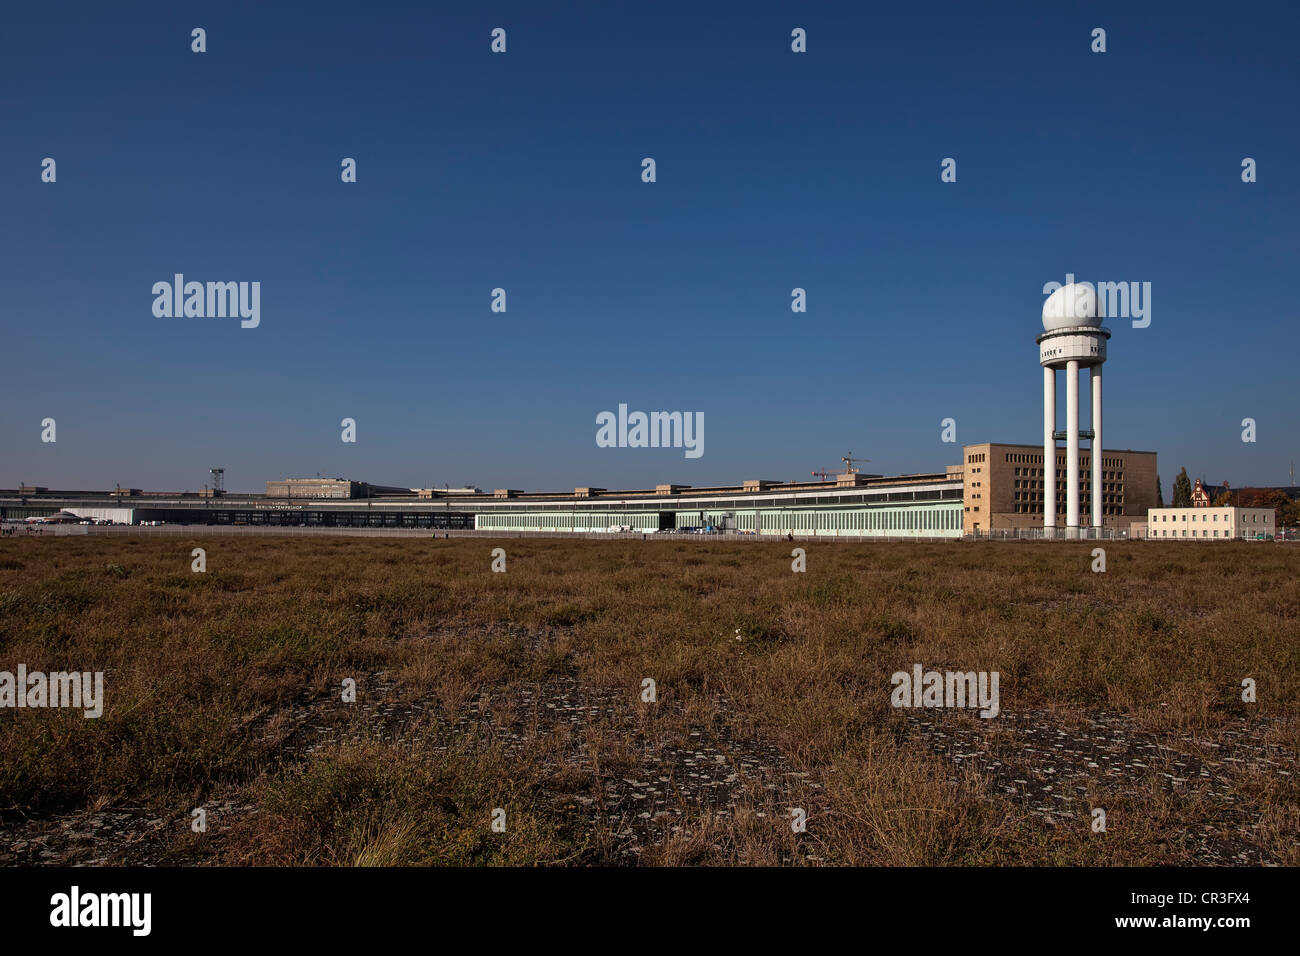 View from the former airfield of to the Tempelhof airport building with airplane hangards, park on Tempelhofer Feld - Stock Image